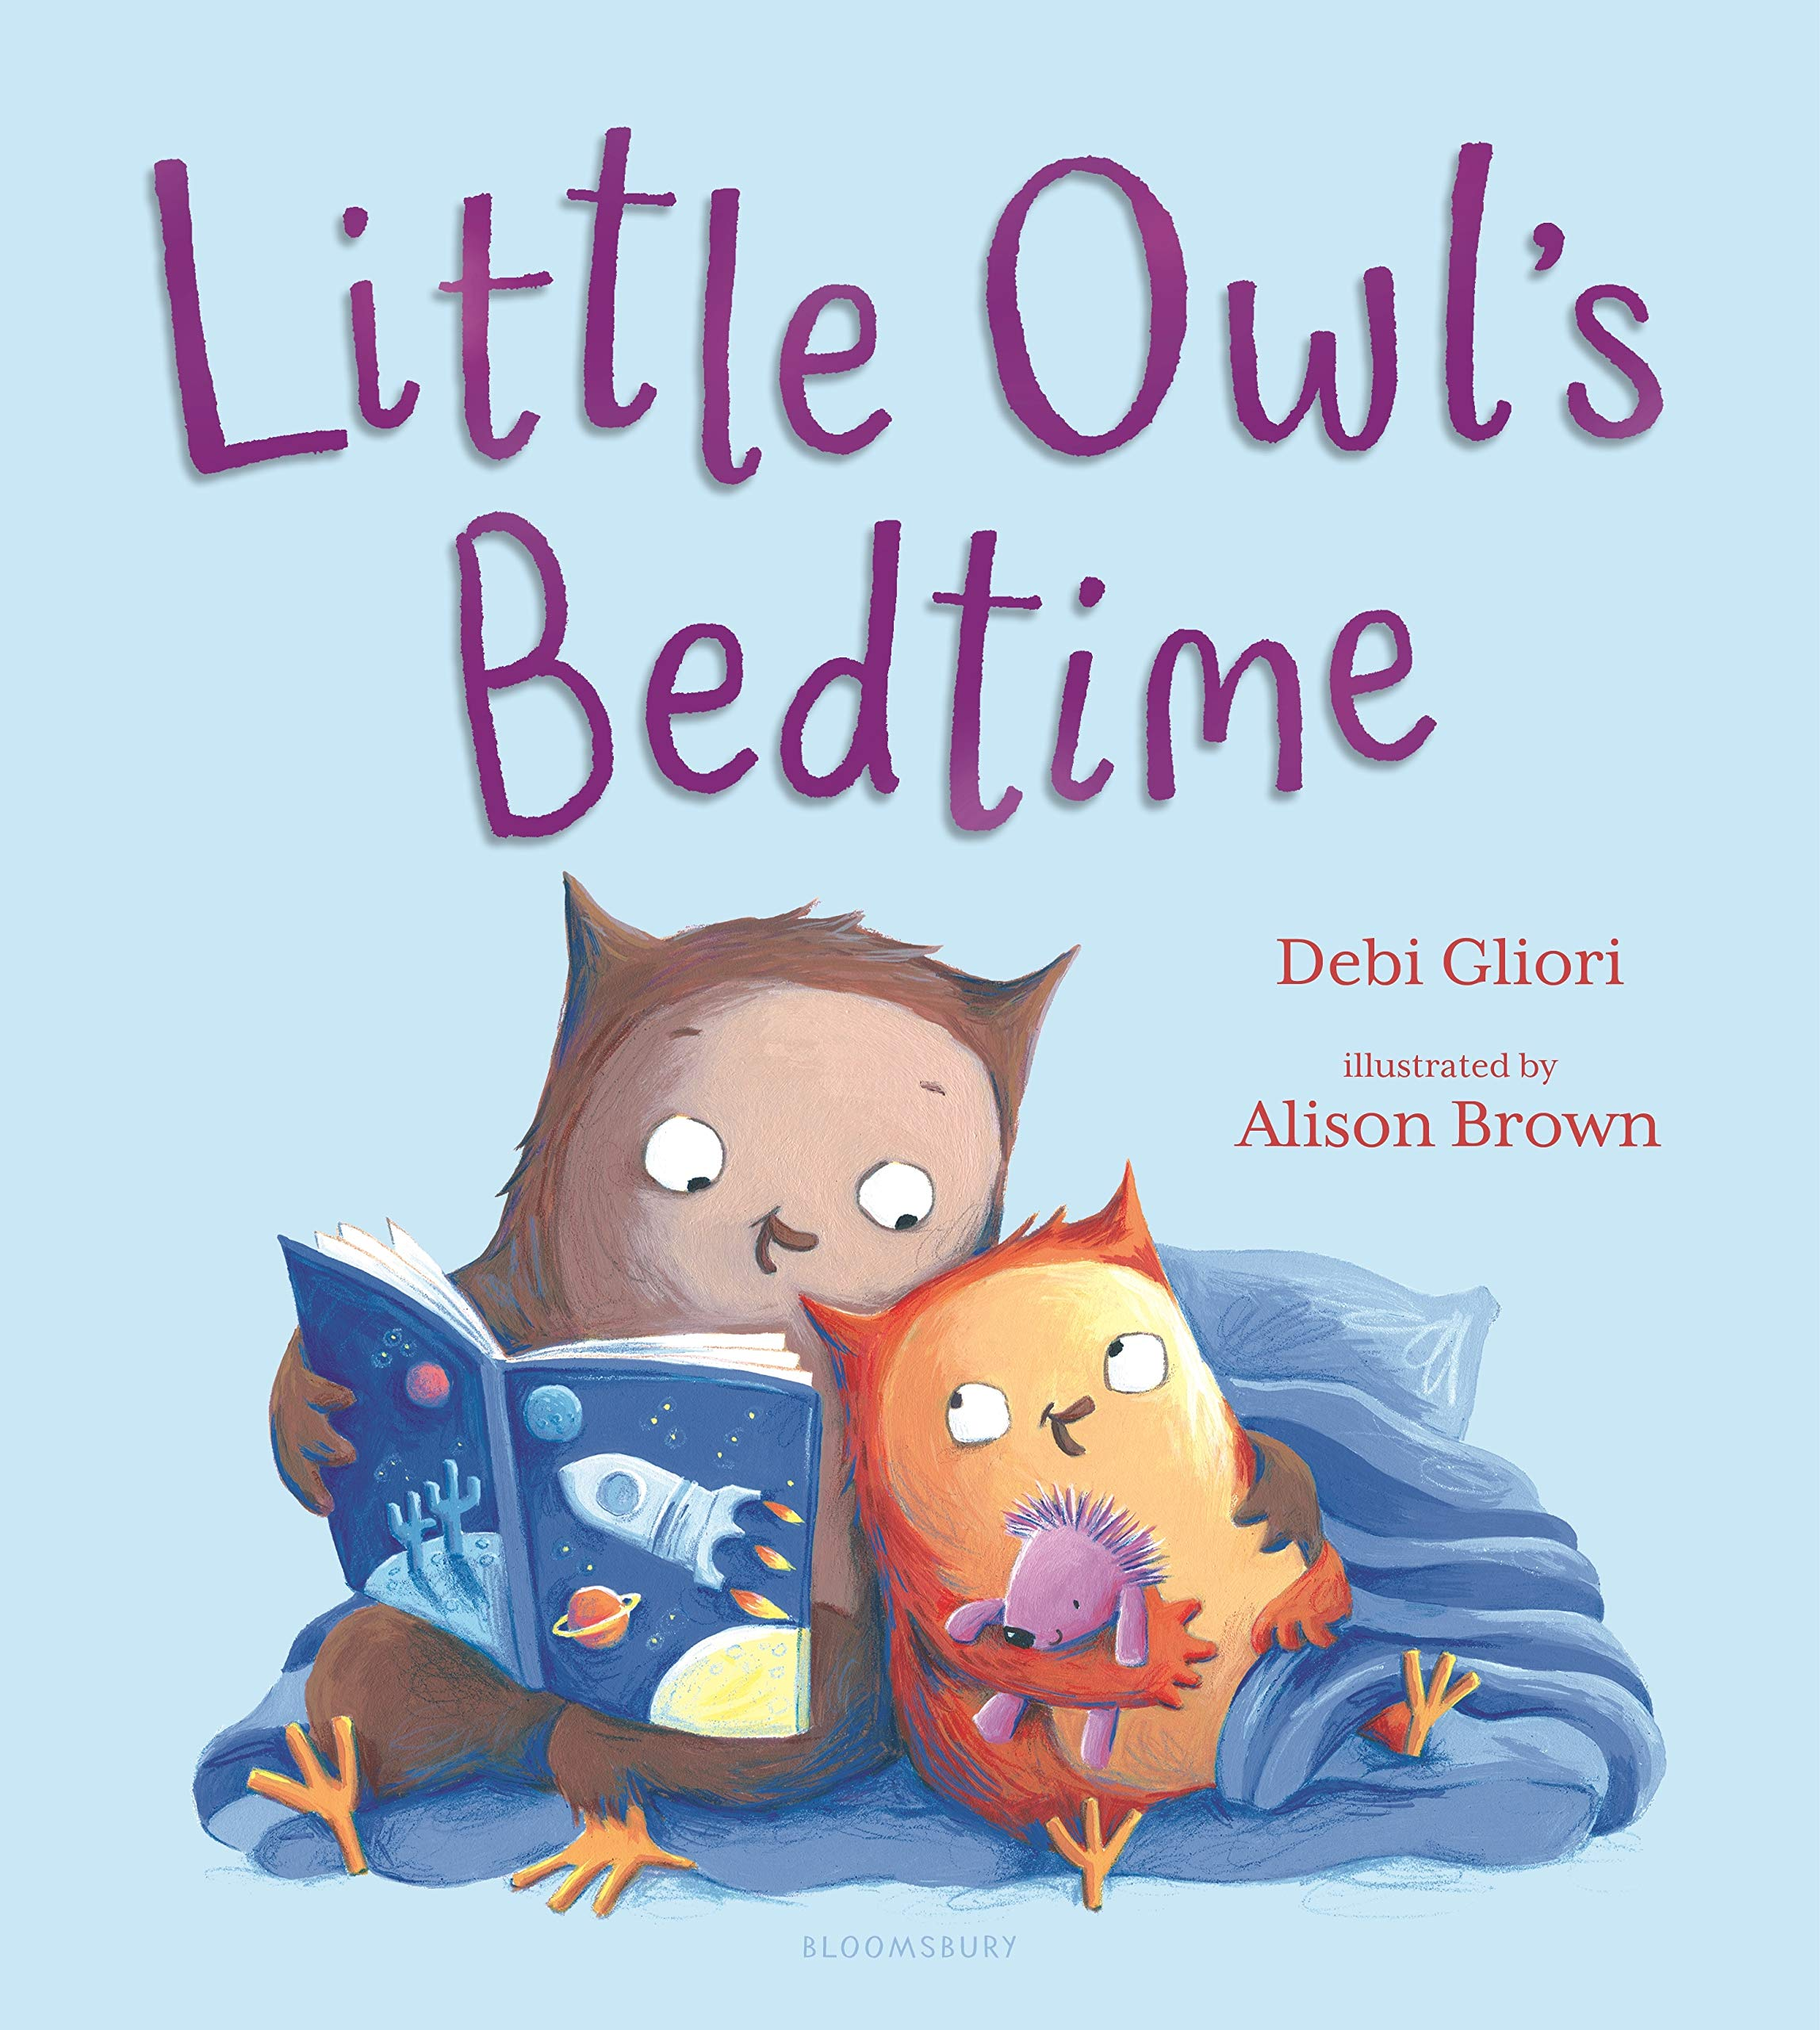 celebrate-picture-books-picture-book-review-little-owl's-bedtime-cover